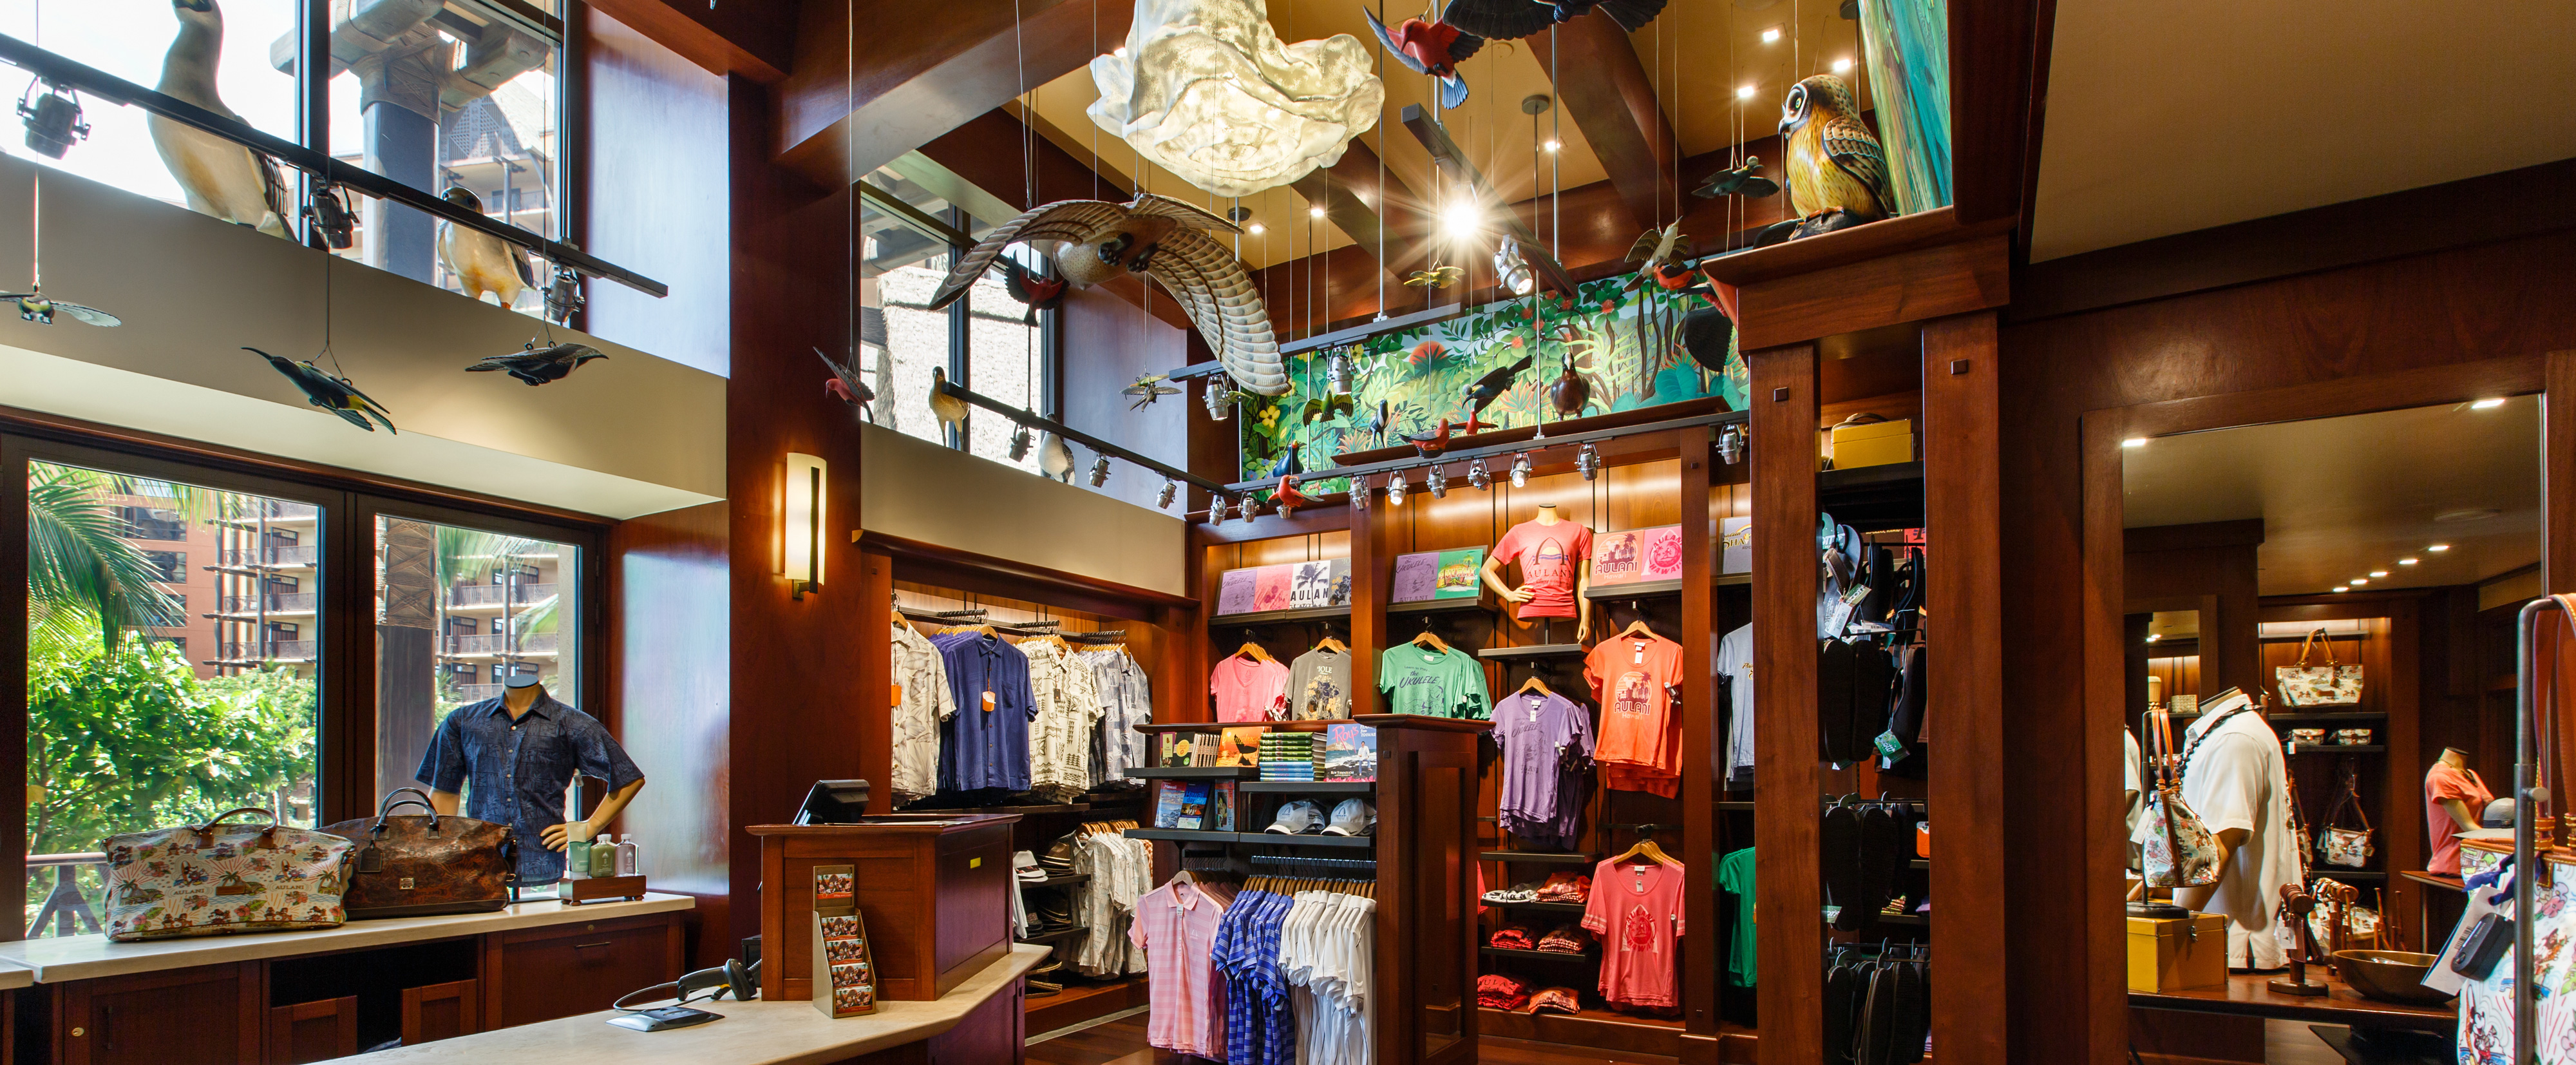 Hanging birds, apparel displays and the cash wrap counter inside Hale